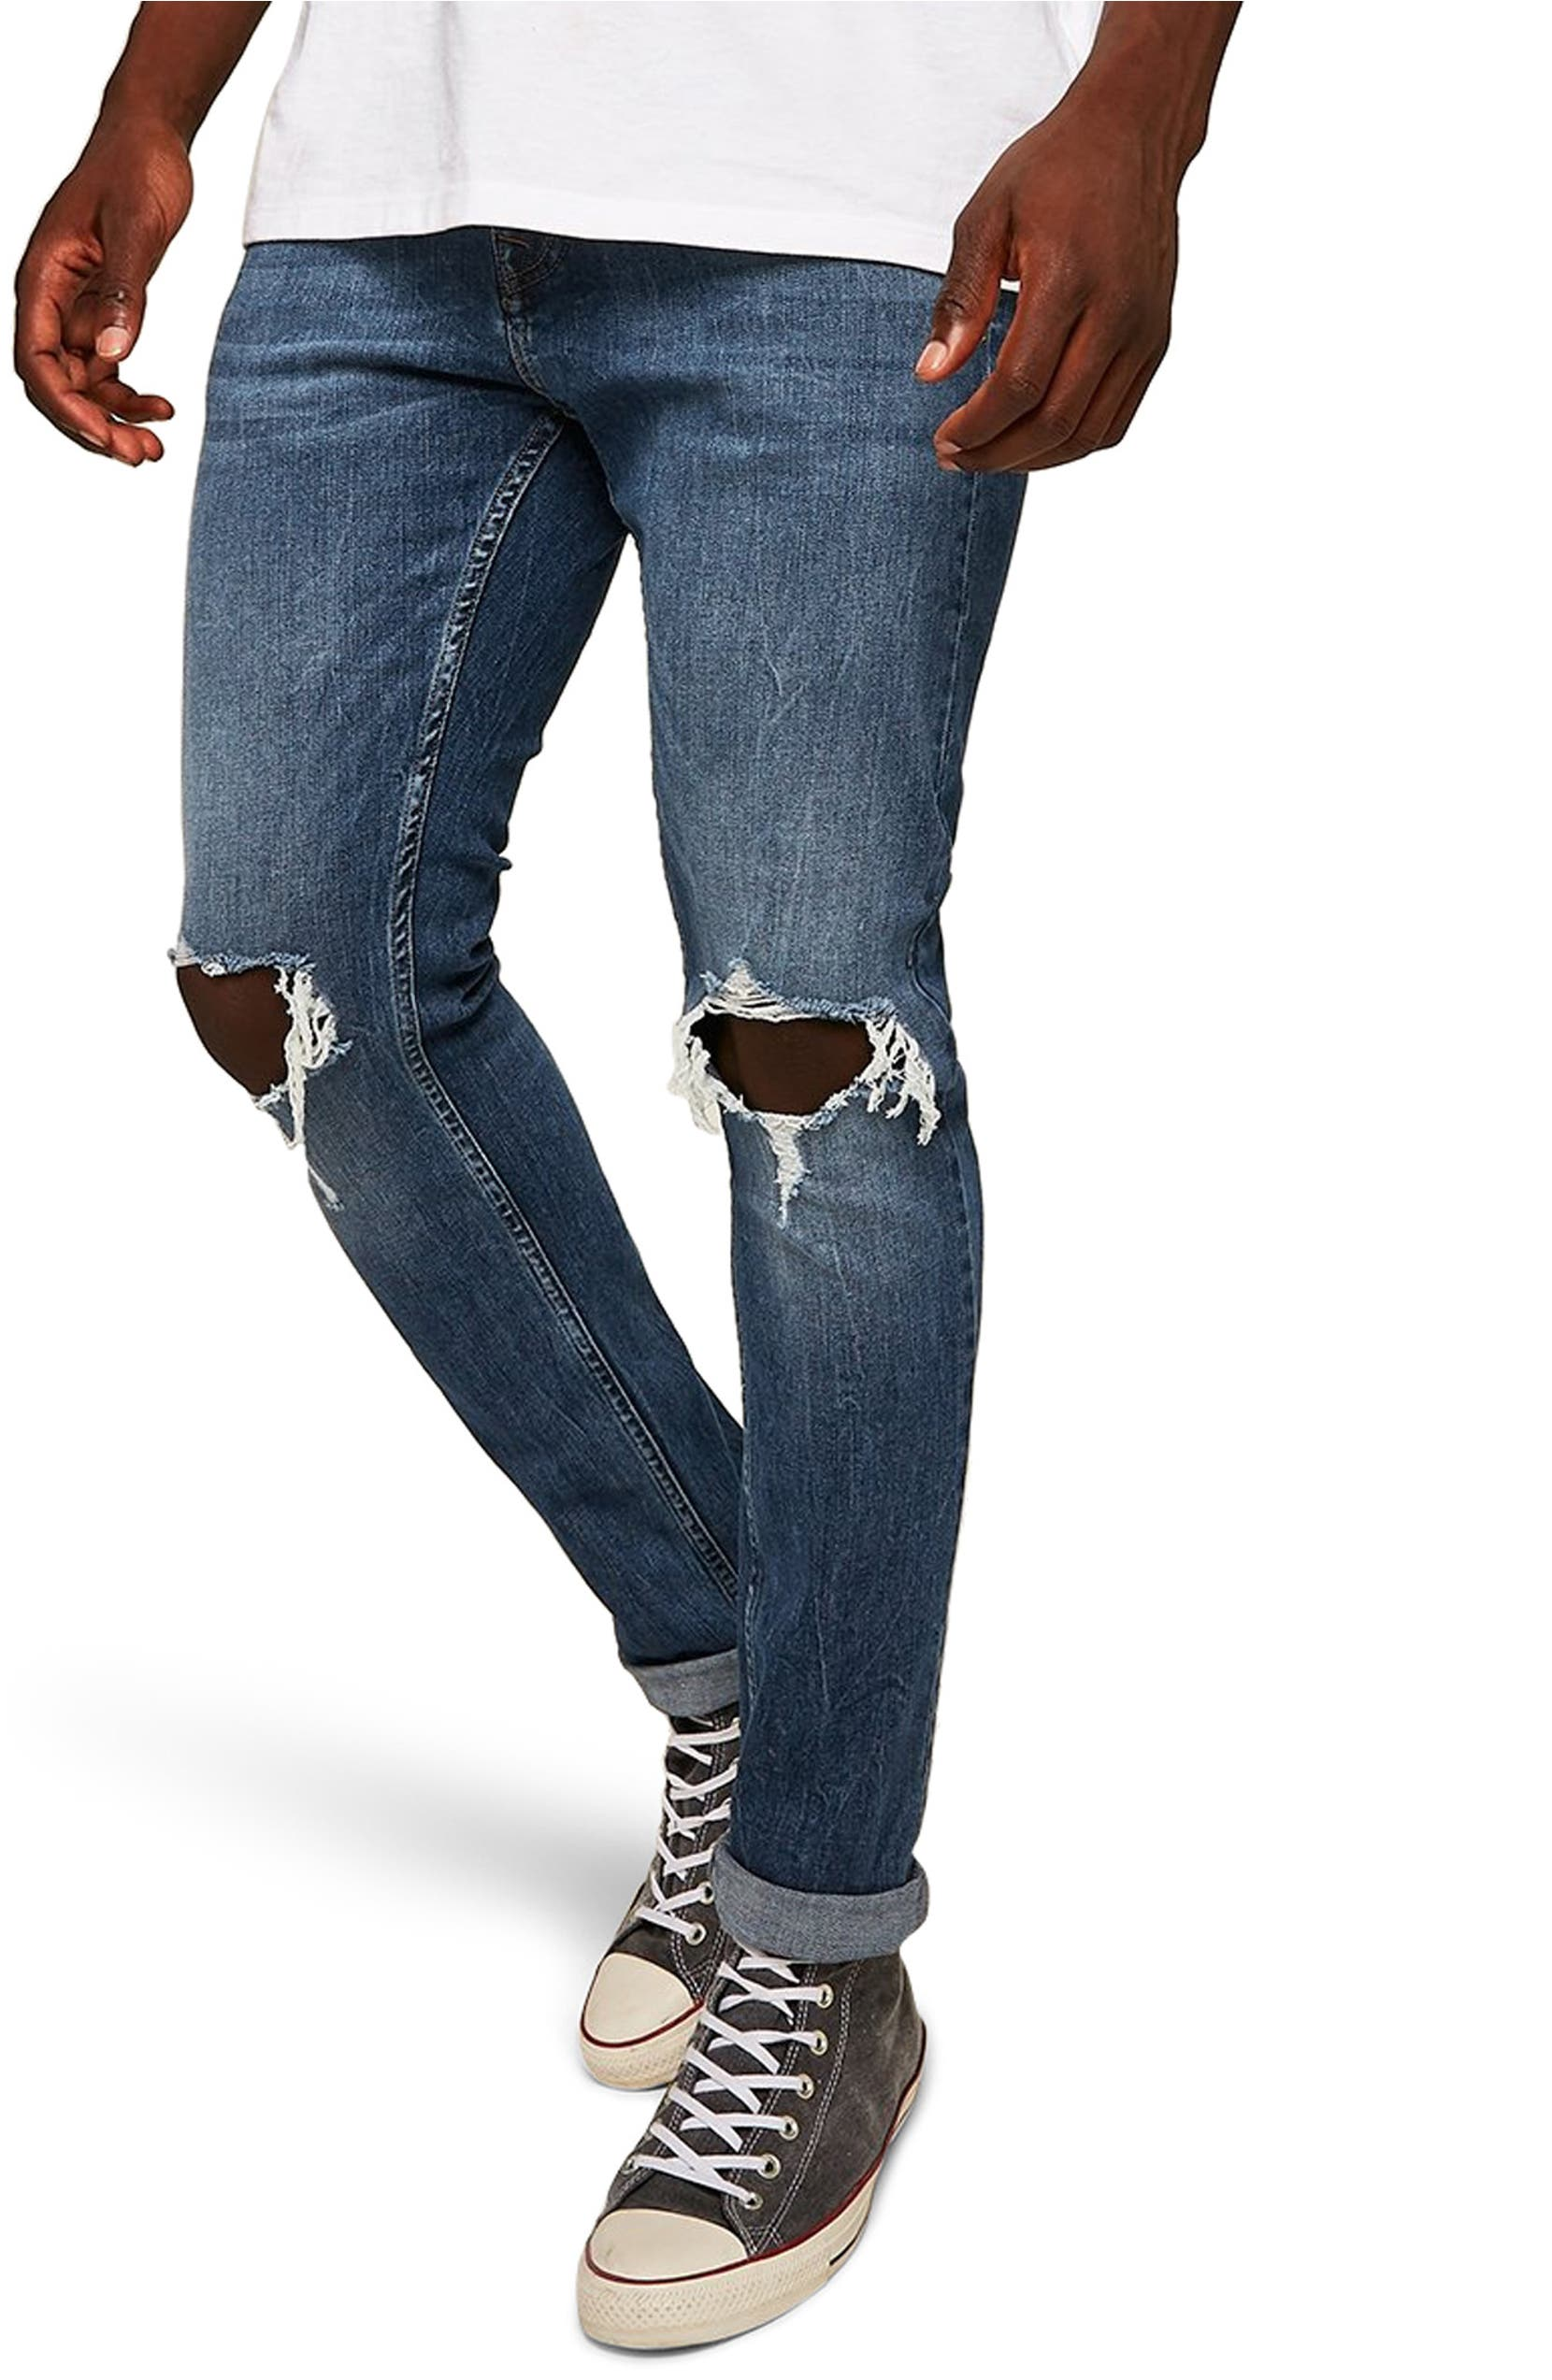 04f5dc43 Topman Polly Ripped Stretch Skinny Fit Jeans | Nordstrom